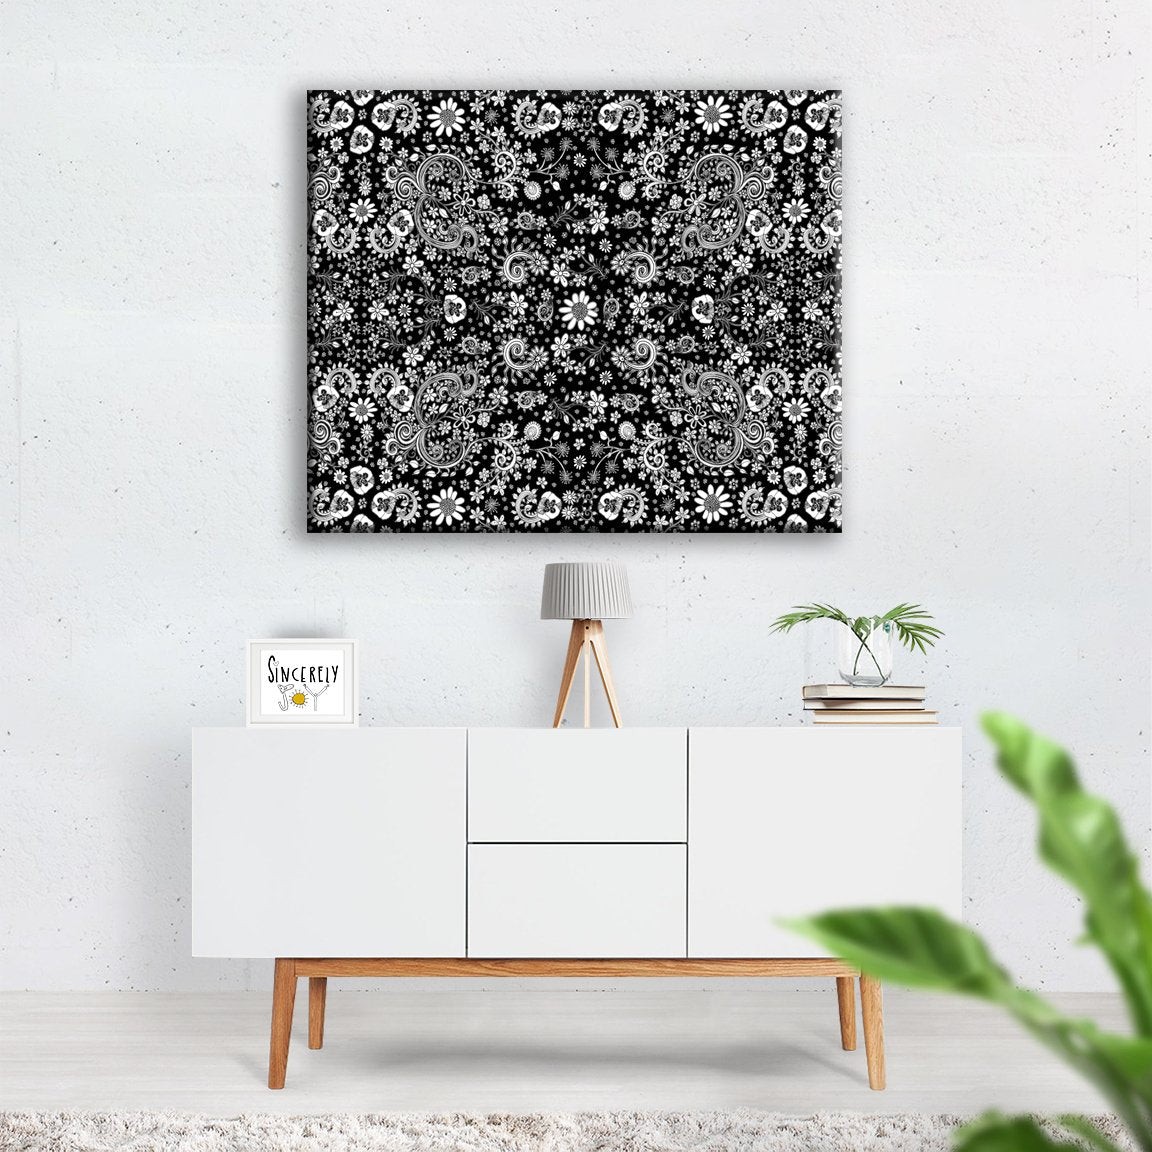 Art Print On Canvas Black And White Birds Of A Flower Castle Of Joy